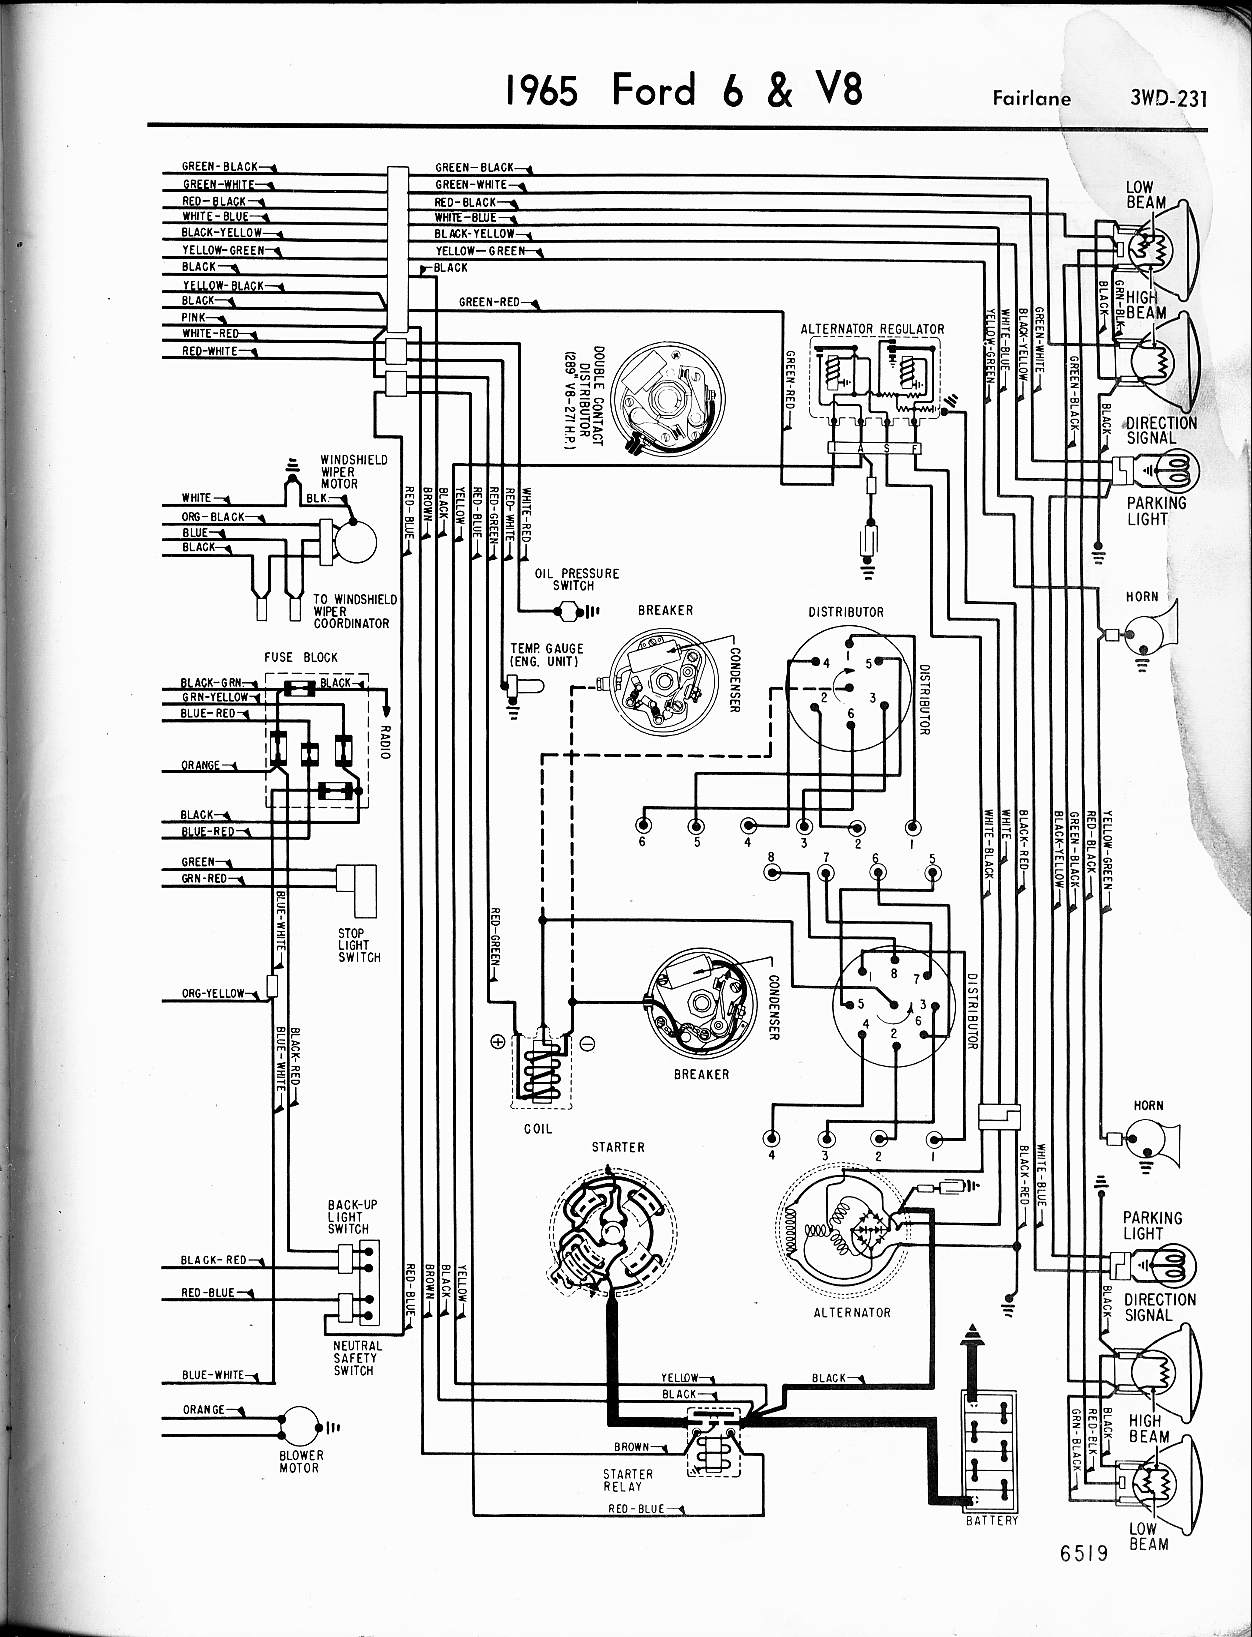 [SCHEMATICS_48ZD]  57-65 Ford Wiring Diagrams | 1966 Ford F100 Engine Wiring Diagram Free Picture |  | The Old Car Manual Project